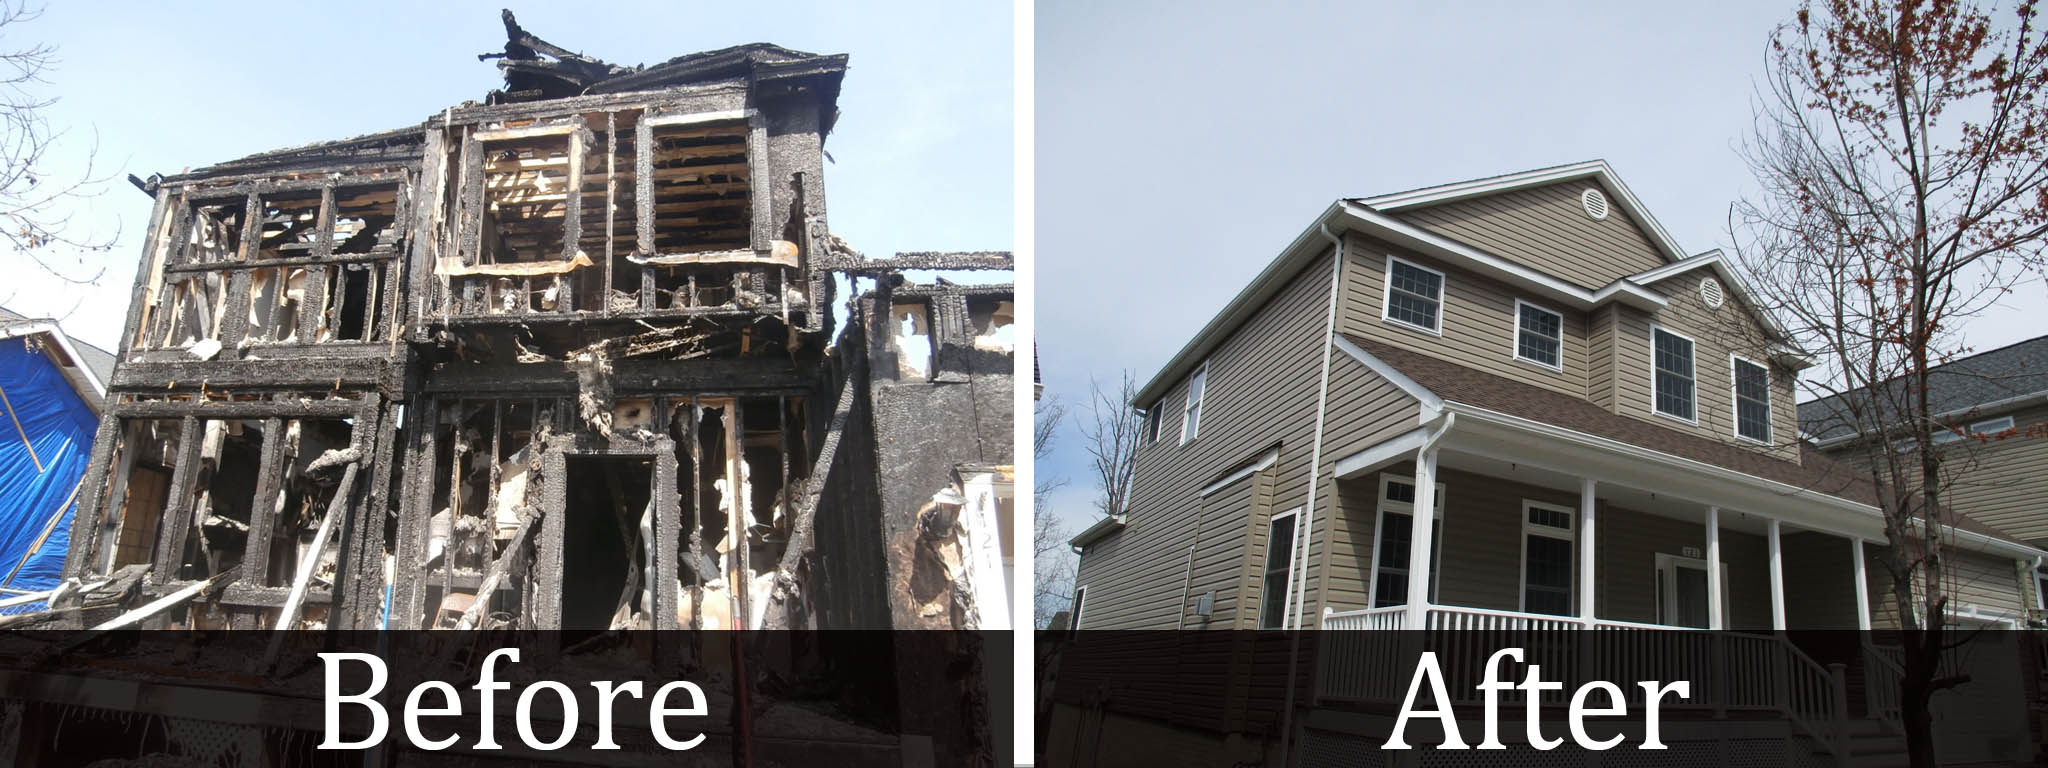 Residential Fire Restoration in Fredericksburg VA